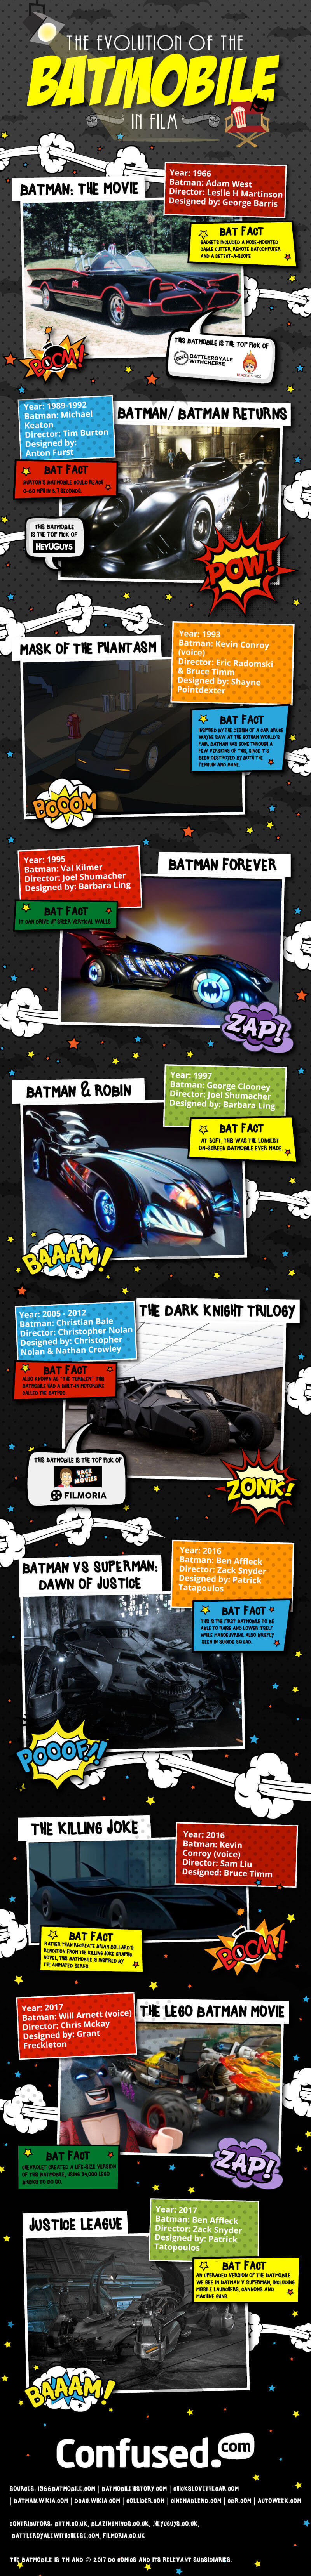 batmobile-evolution-infographic